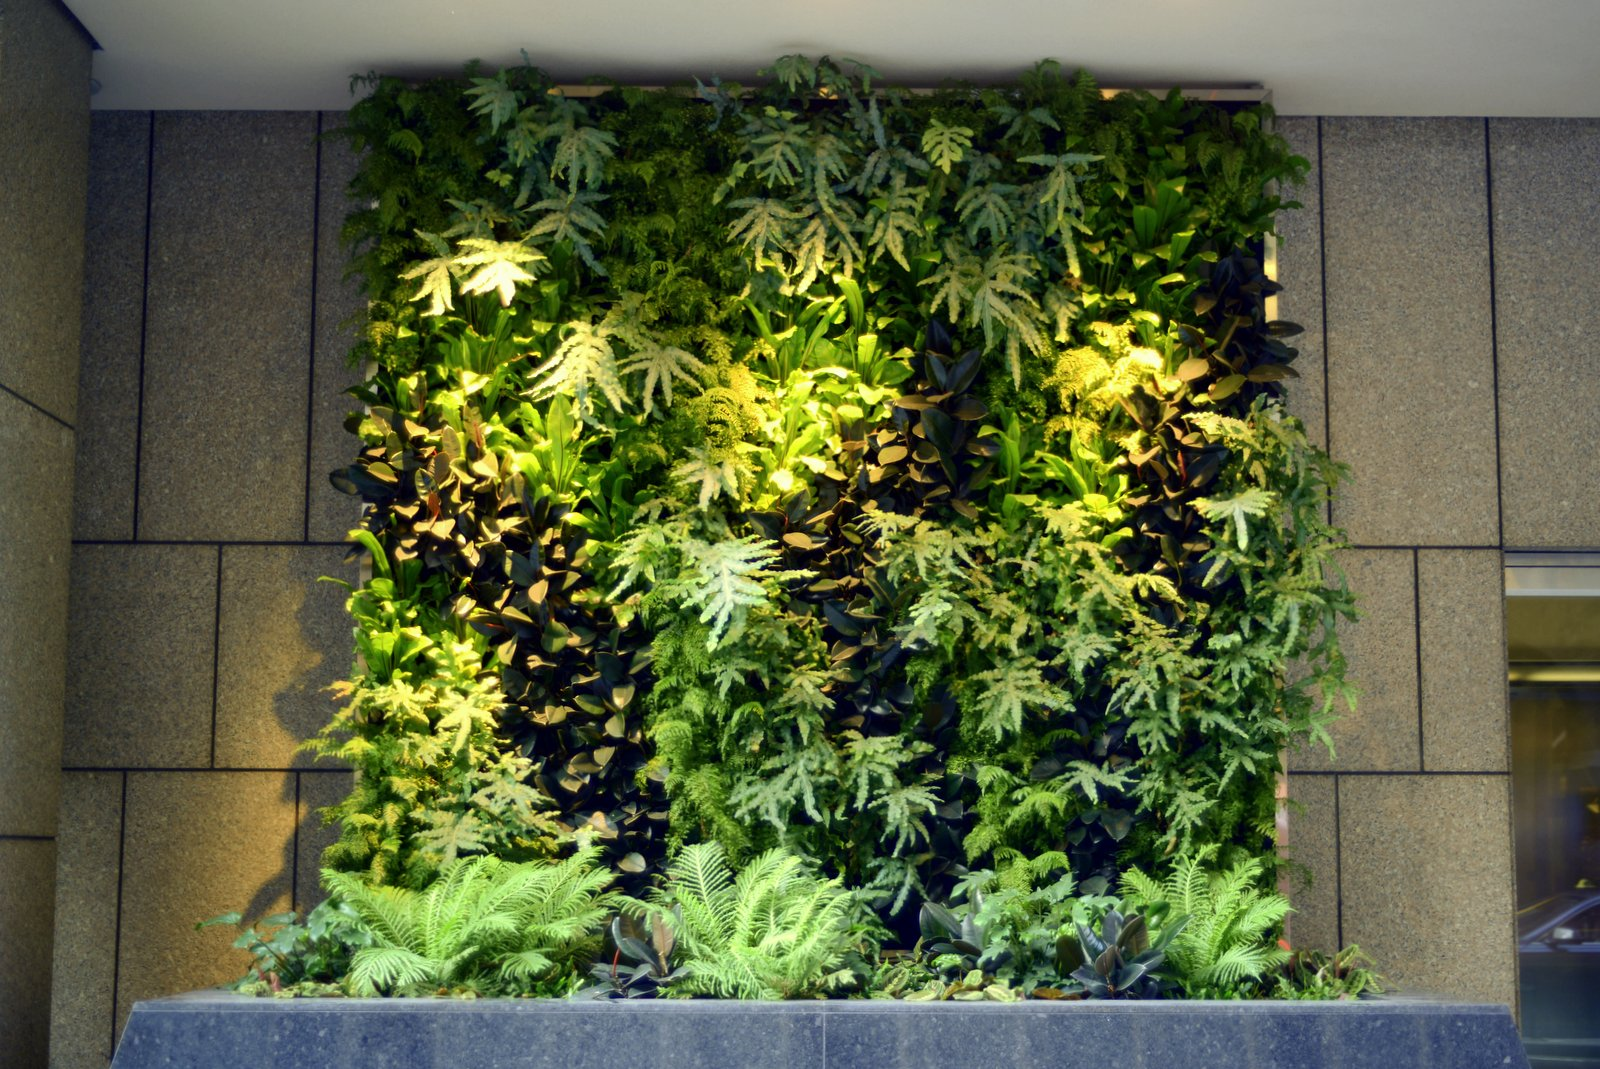 Plants on walls vertical garden systems 6 months mature for Vertical garden designs